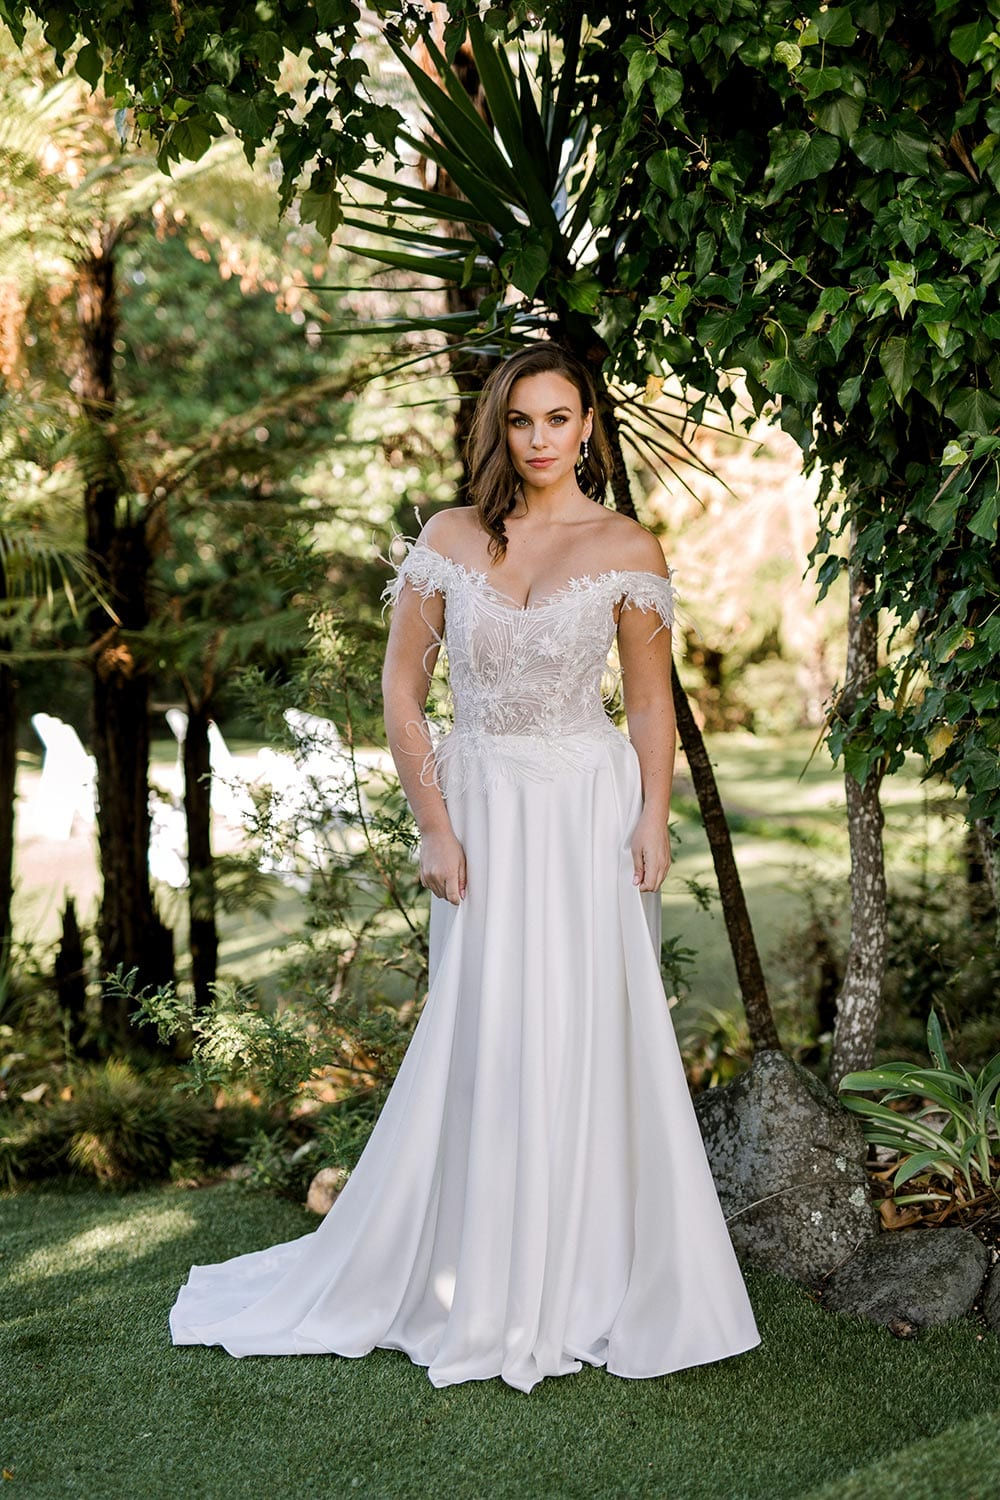 Genevive Wedding Dress from Vinka Design. The soft off-the-shoulder sleeves & semi-sheer structured bodice with hand-appliqued lace and a soft satin skirt make this a romantic & dreamy wedding dress. Full length portrait, photographed at Tui Hills.